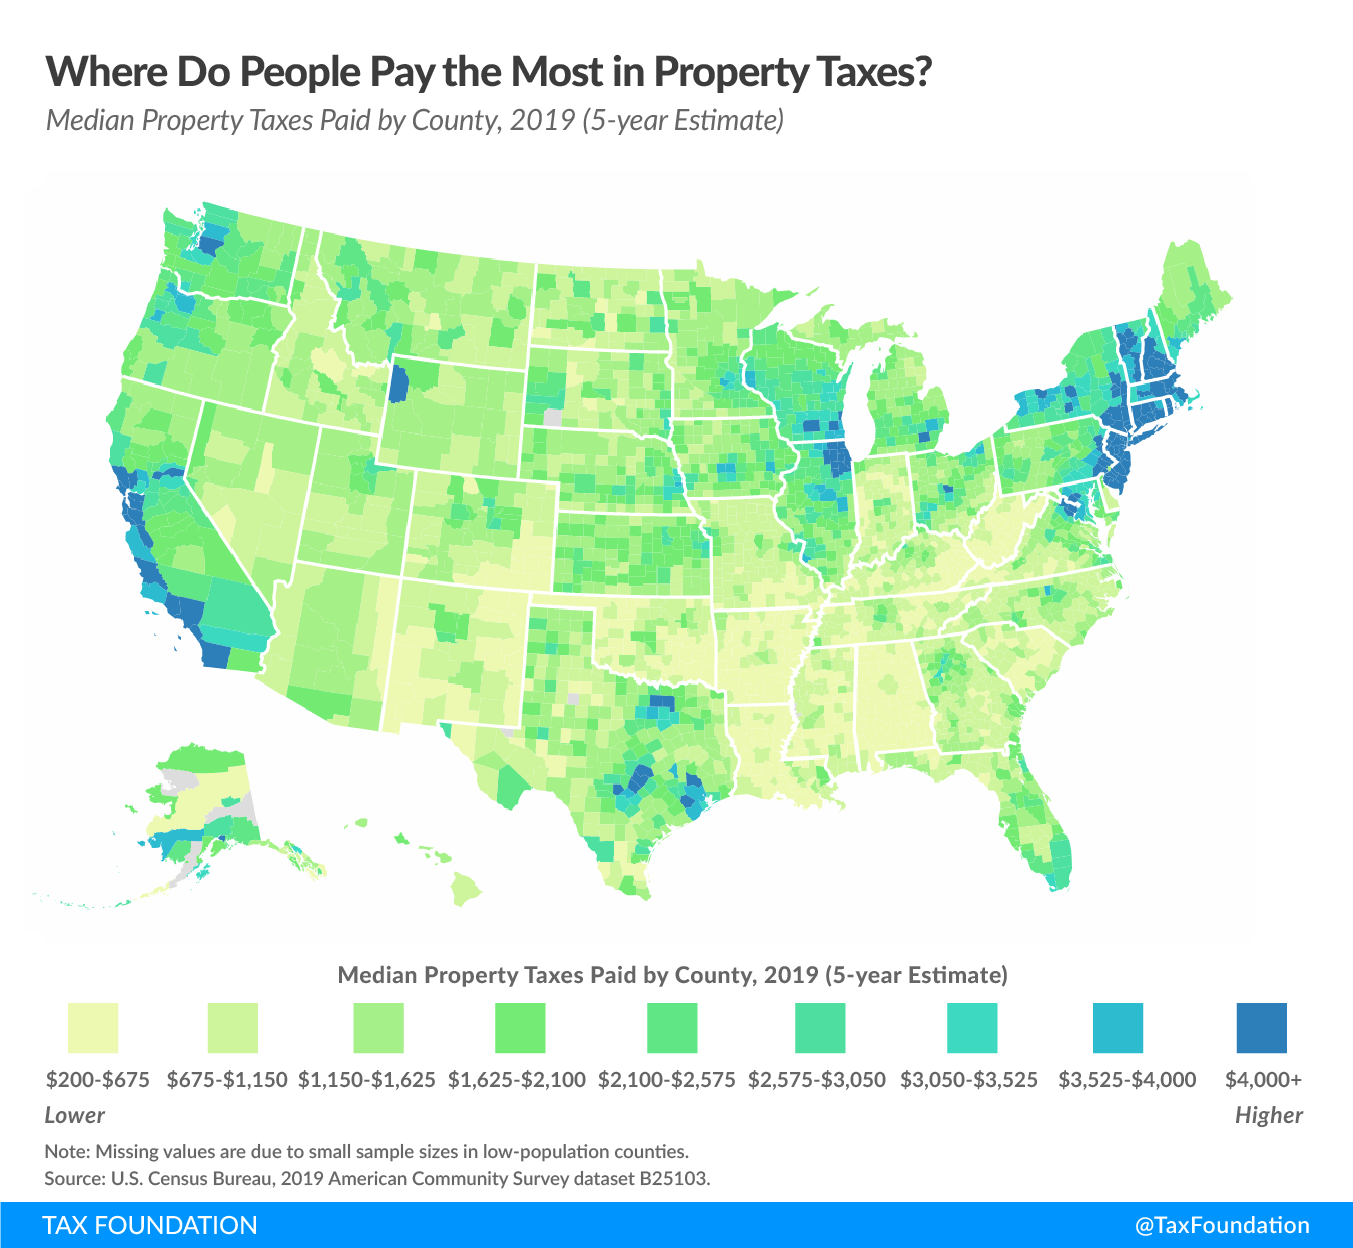 Property taxes by county. Explore 2021 county property tax paid map. Which county has the highest property tax rate? Are property taxes by city or county? Who pays the most property taxes in America?